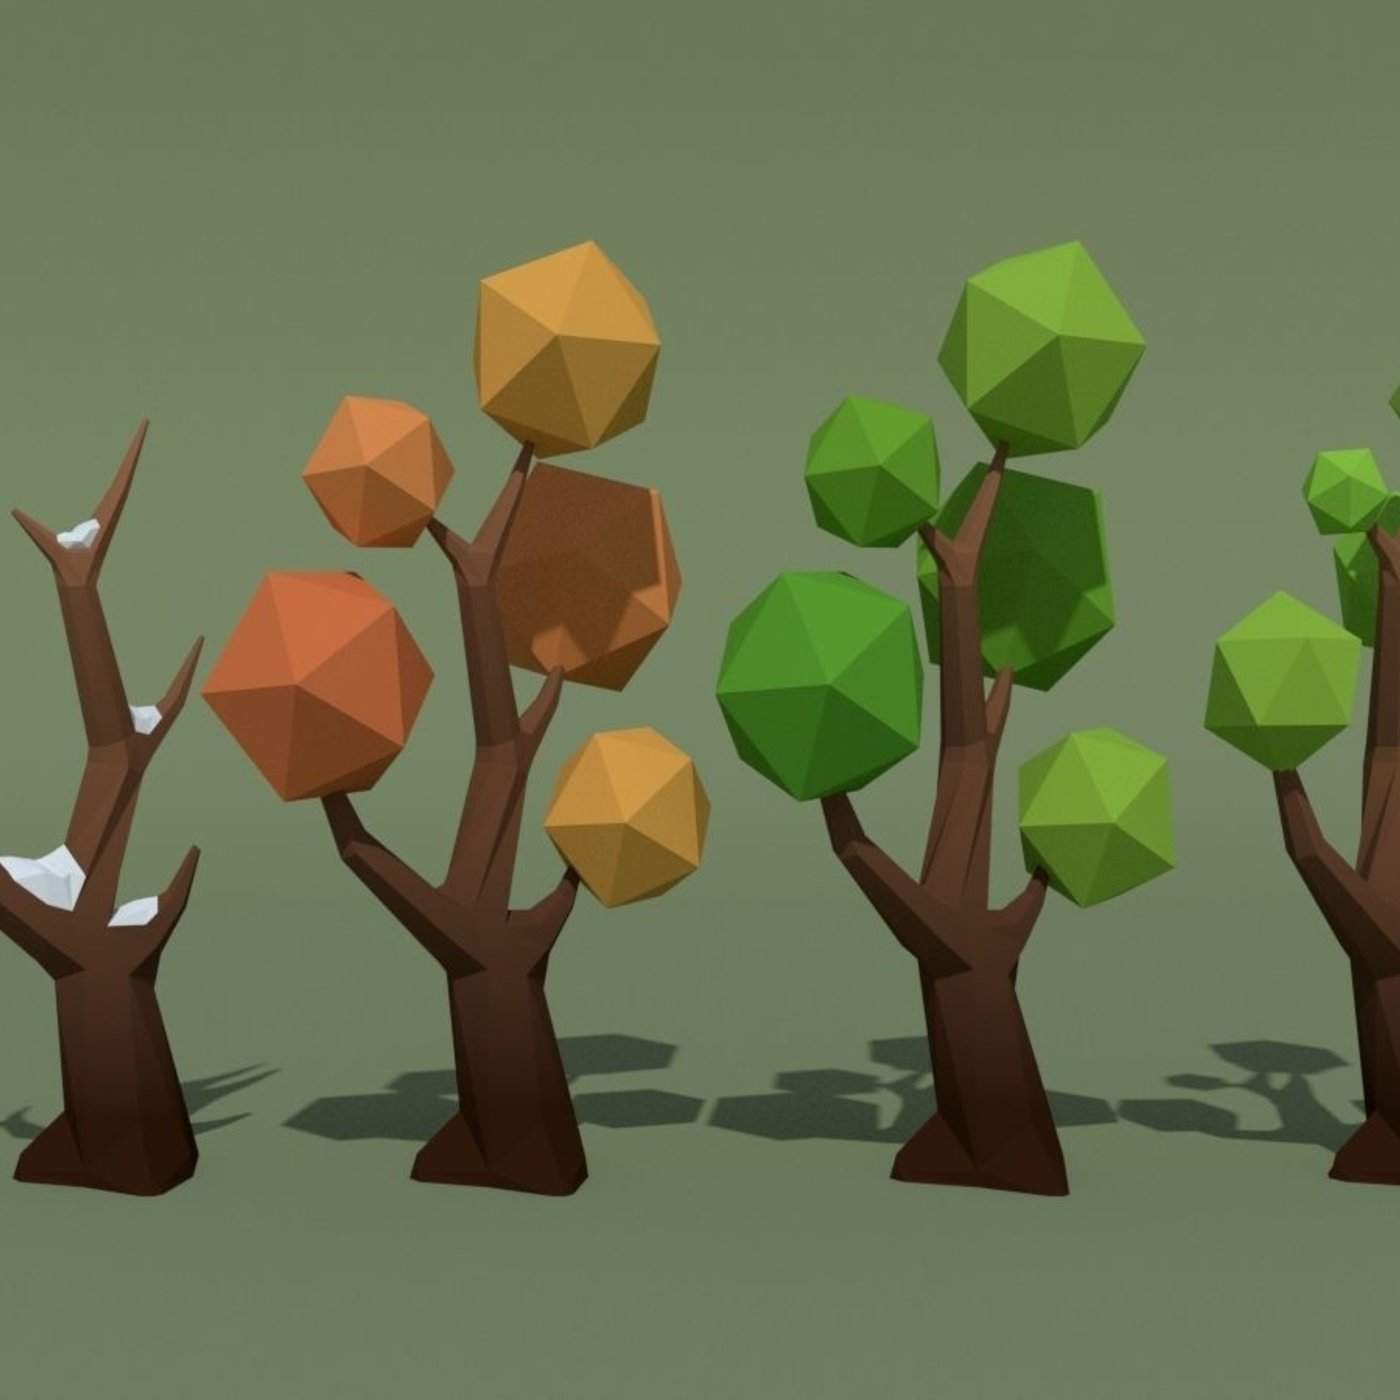 LowPoly Forest Pack